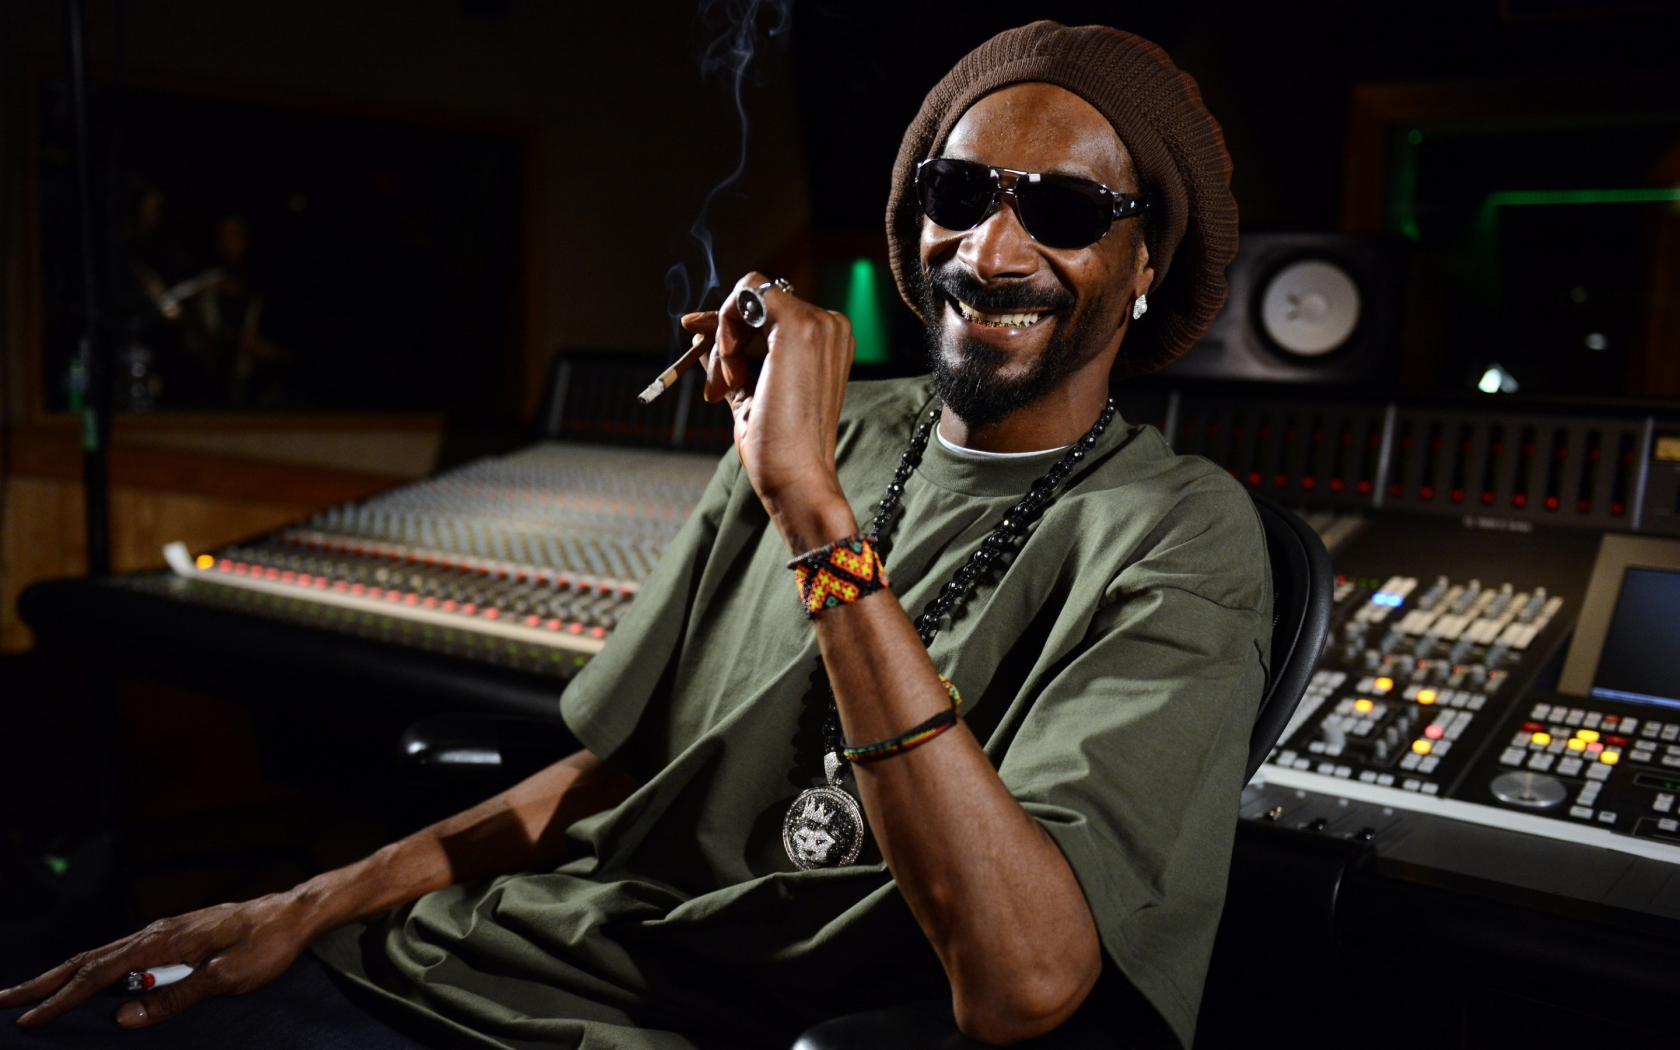 Snoop Dogg Smile for 1680 x 1050 widescreen resolution